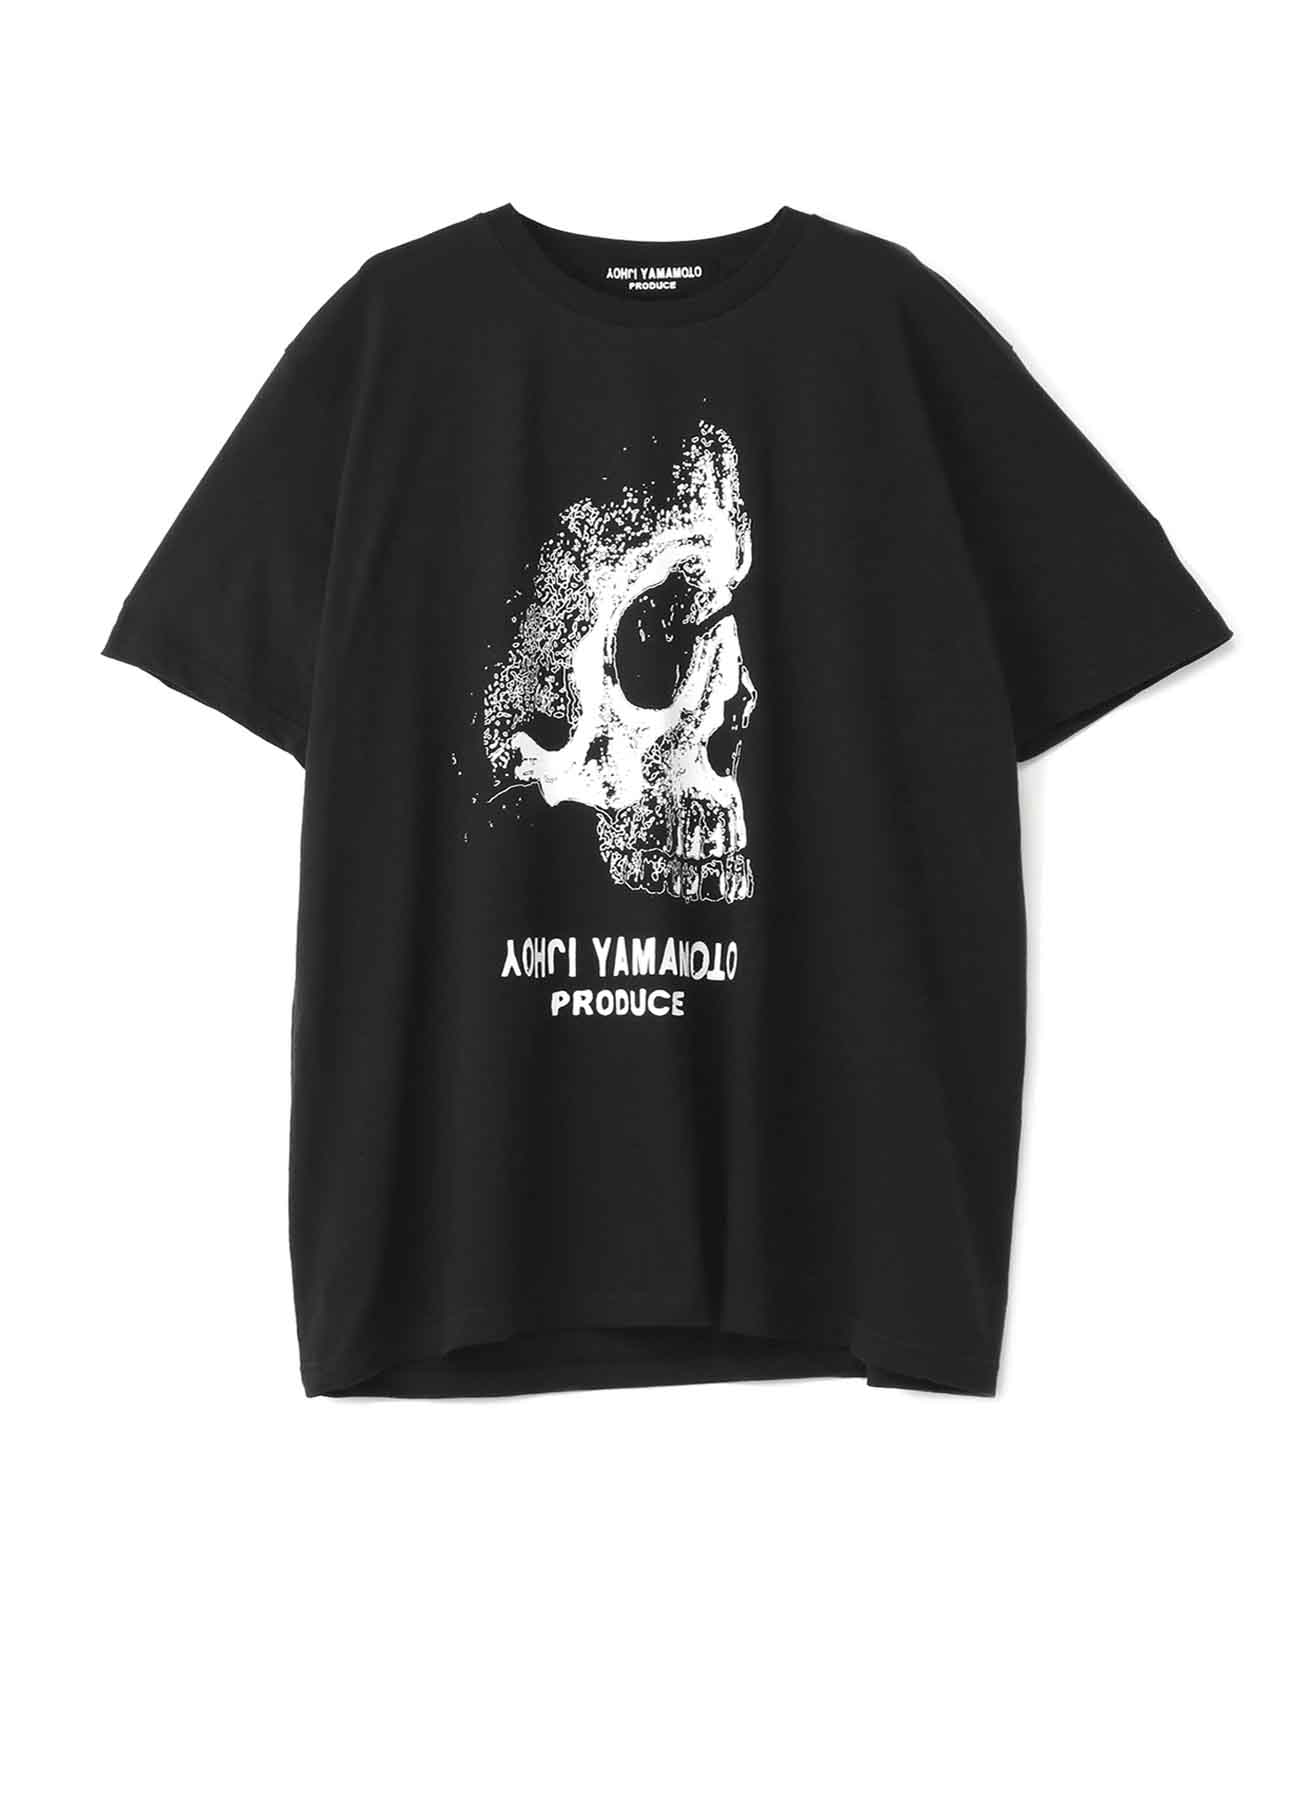 【THE SHOP 限定】骷髅头LOGO T